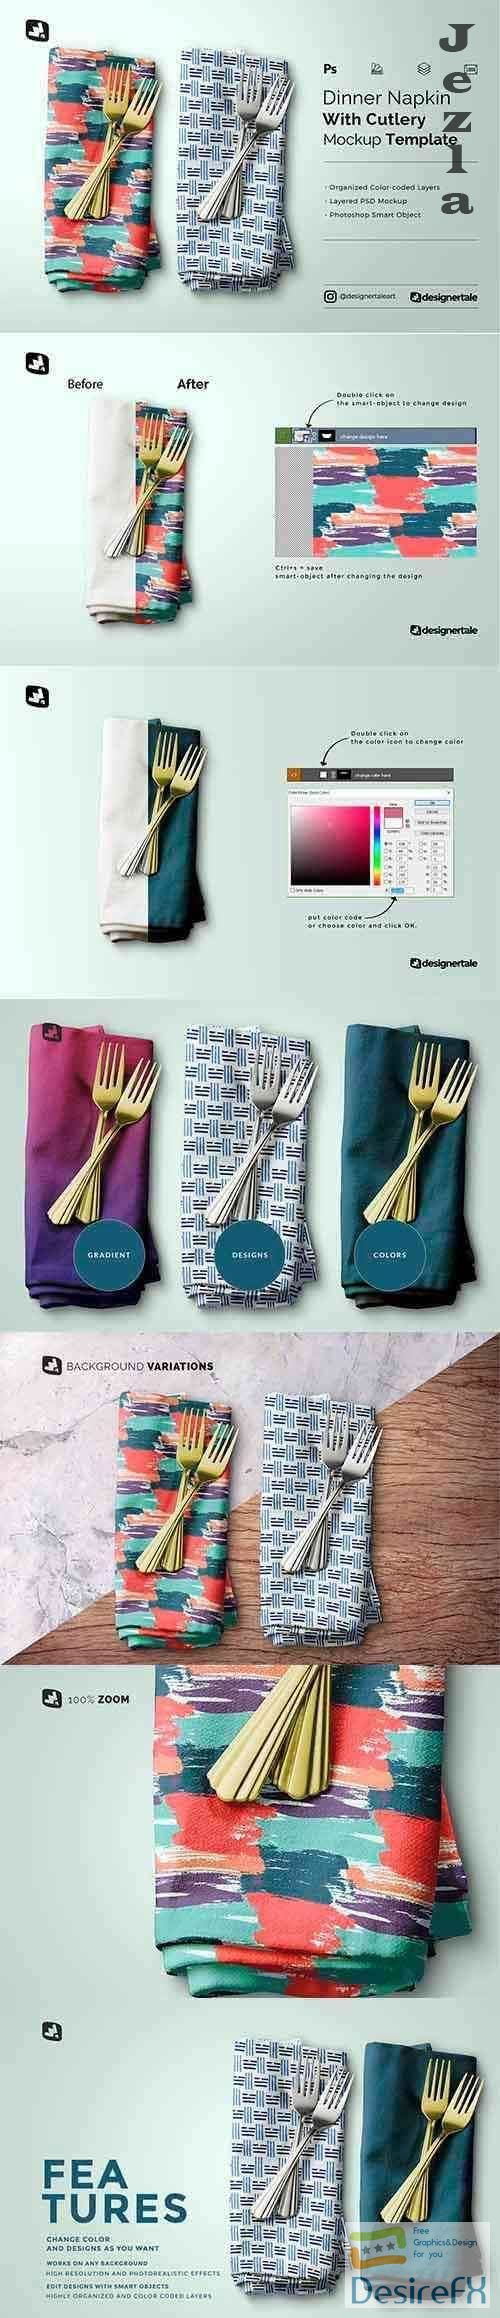 CreativeMarket - Dinner Napkin With Cutlery Mockup 5183051